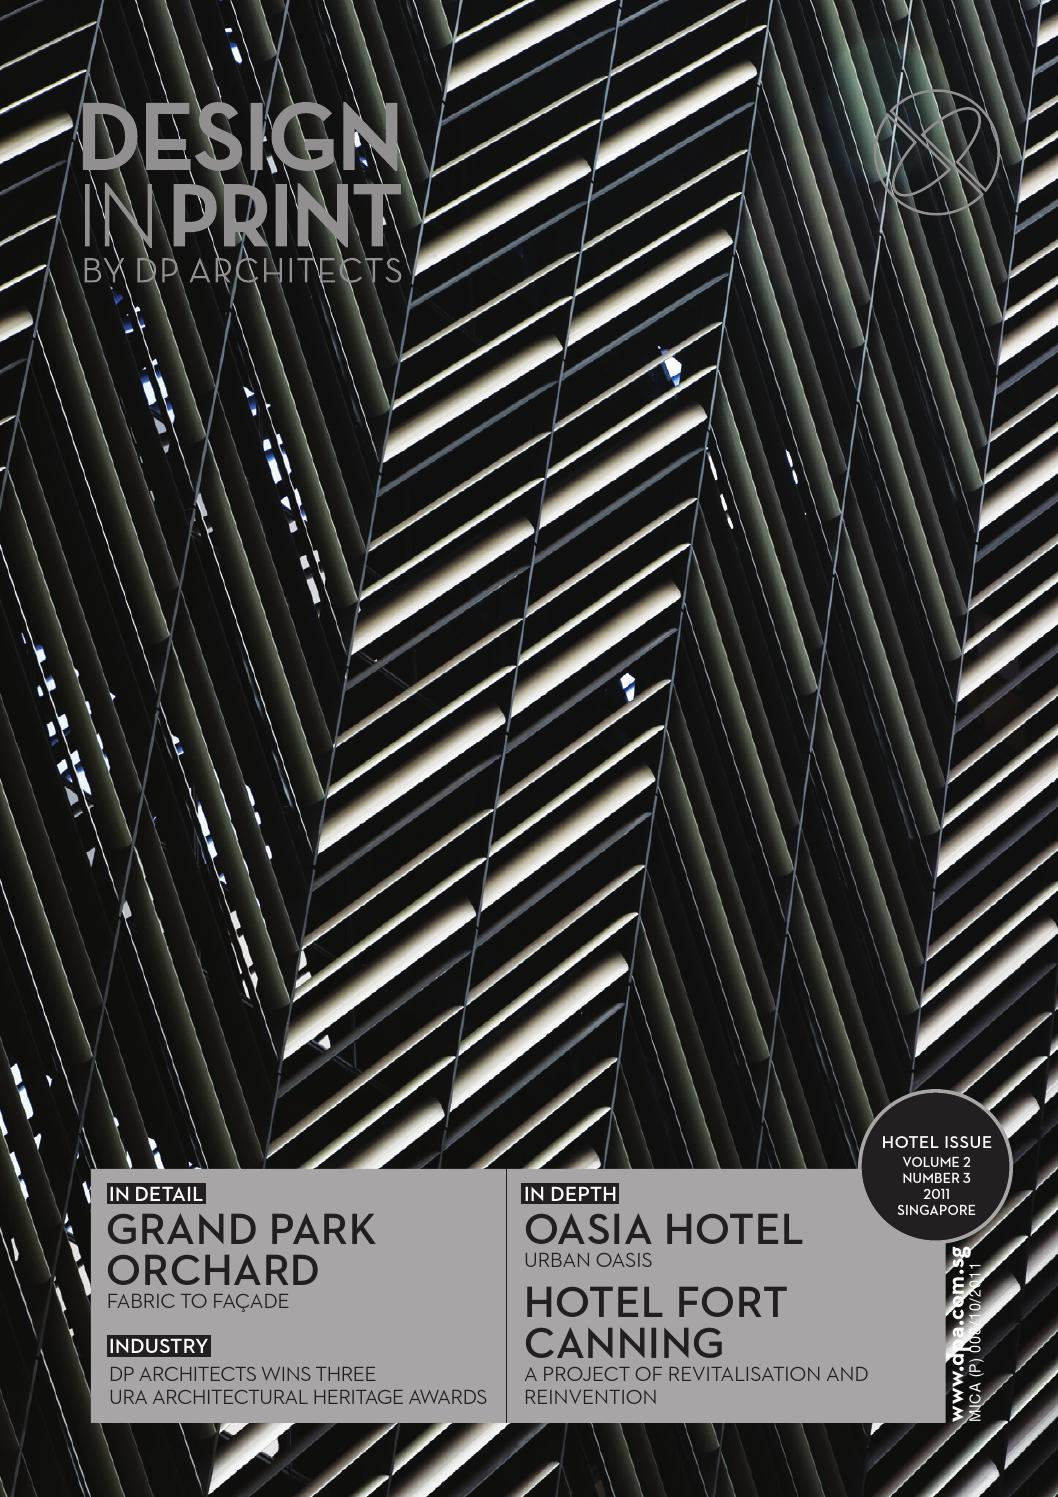 Design In Print 2 3 Hotel by DPArchitects - issuu